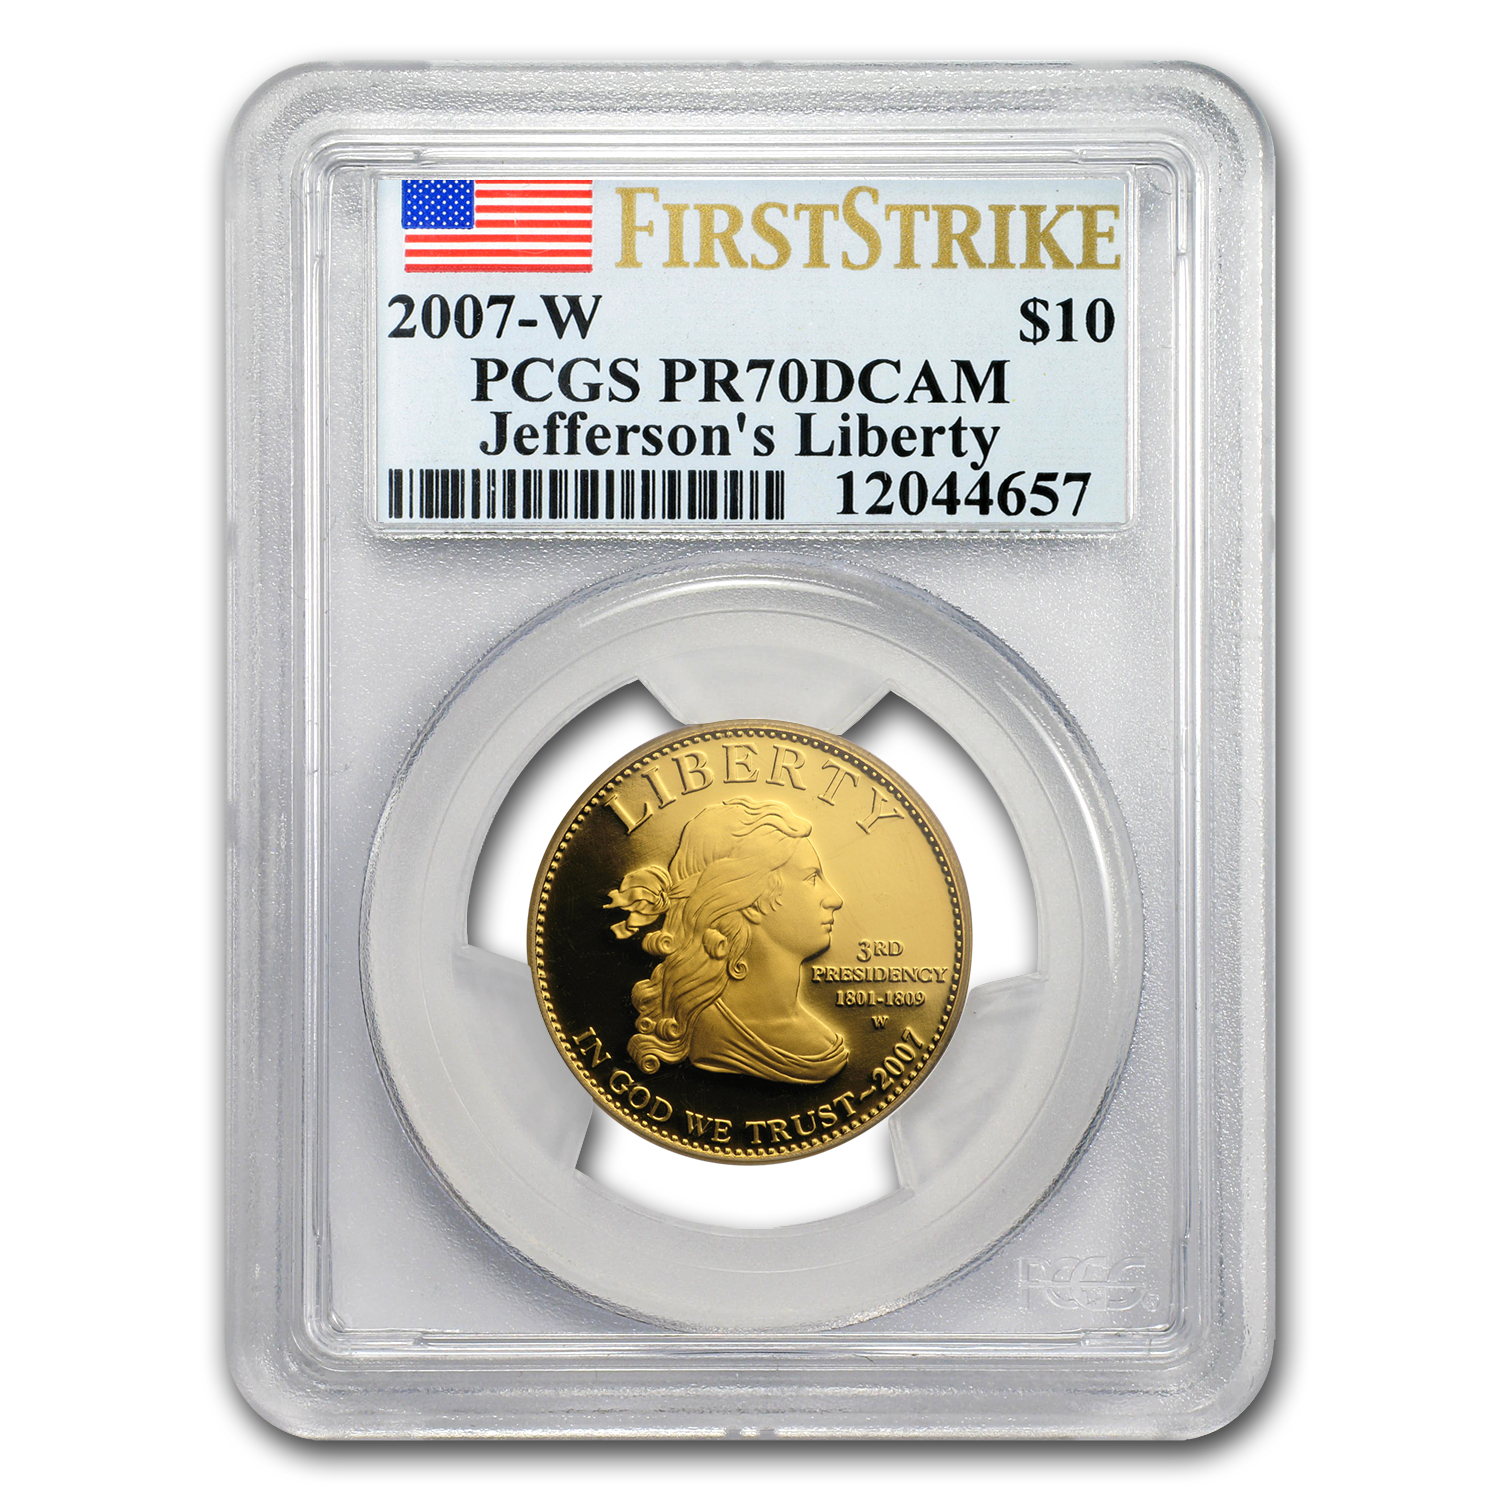 2007-W 1/2 oz Proof Gold Jefferson's Liberty PR-70 PCGS (FS)